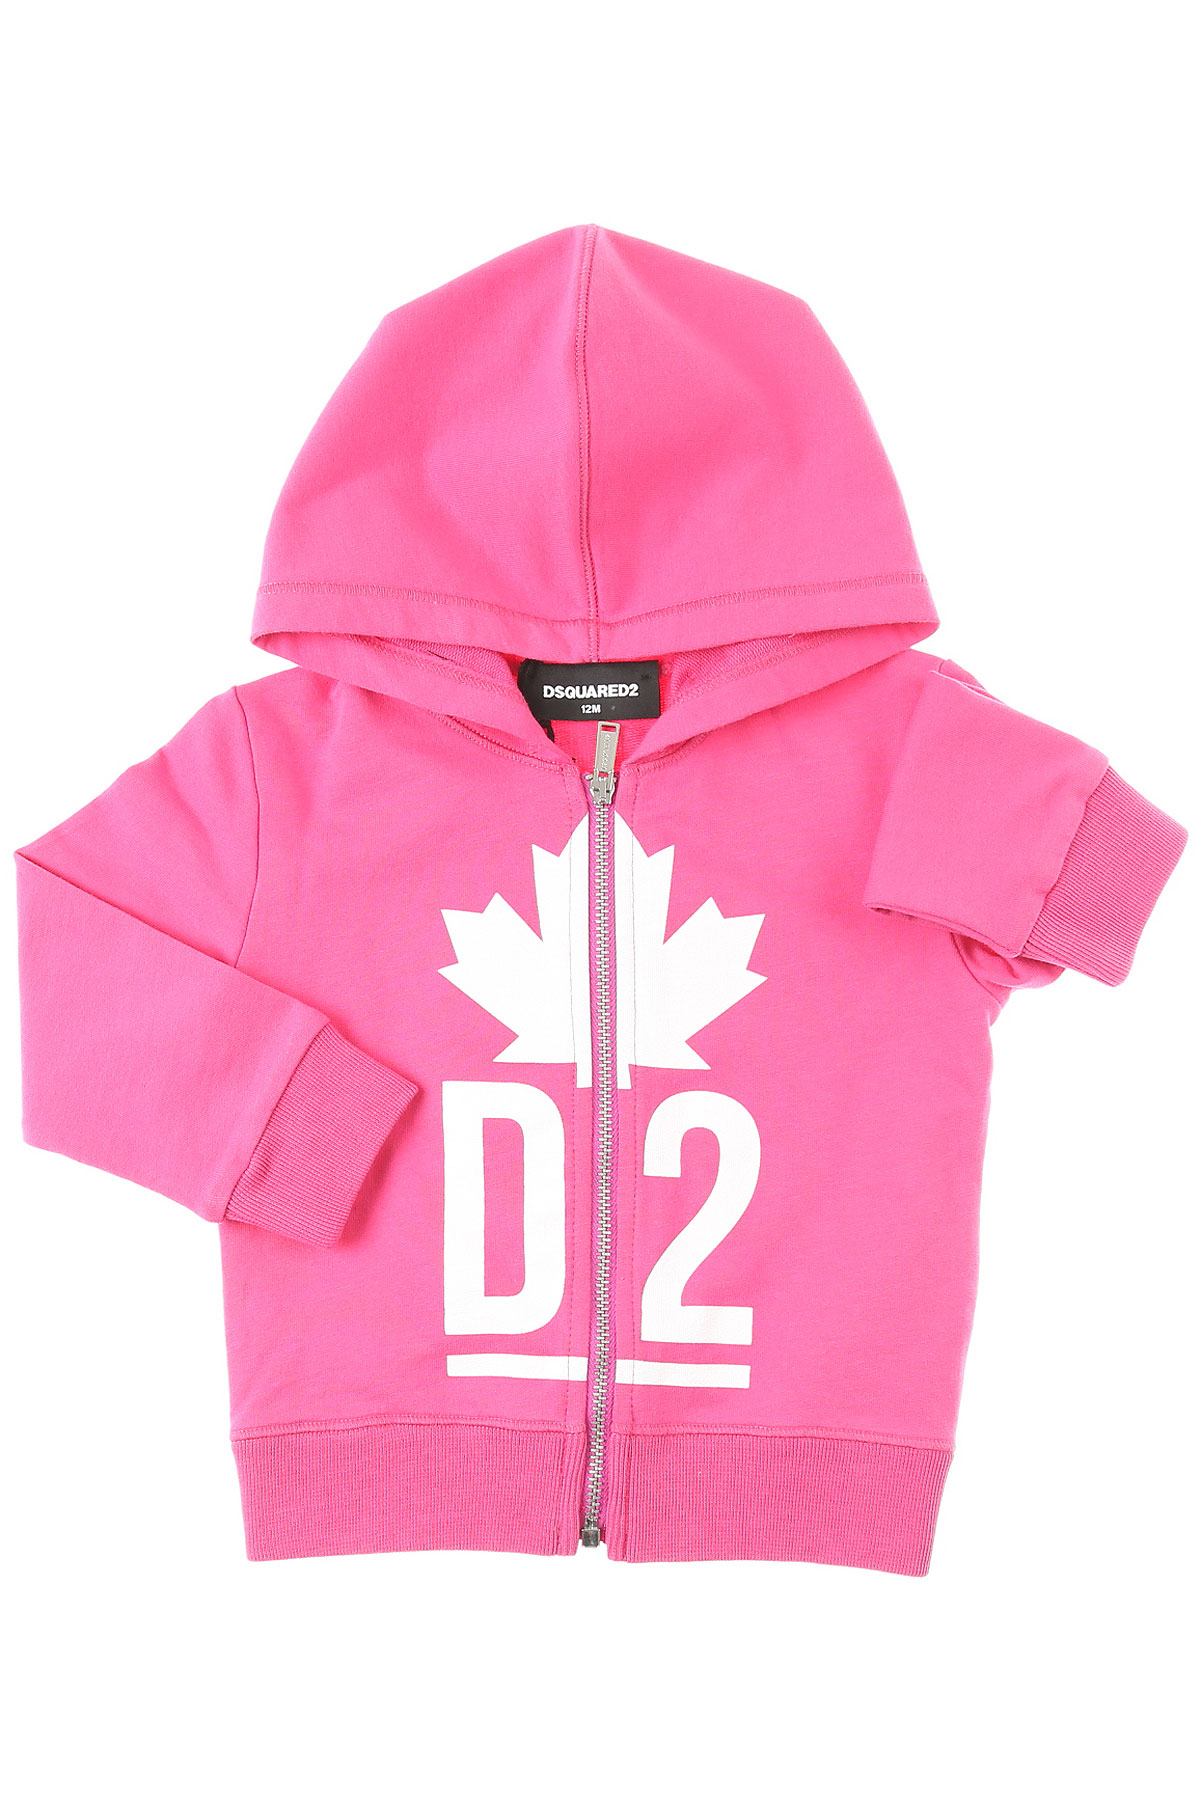 Dsquared2 Baby Sweatshirts & Hoodies for Girls On Sale, Pink, Cotton, 2019, 12M 18M 2Y 9M